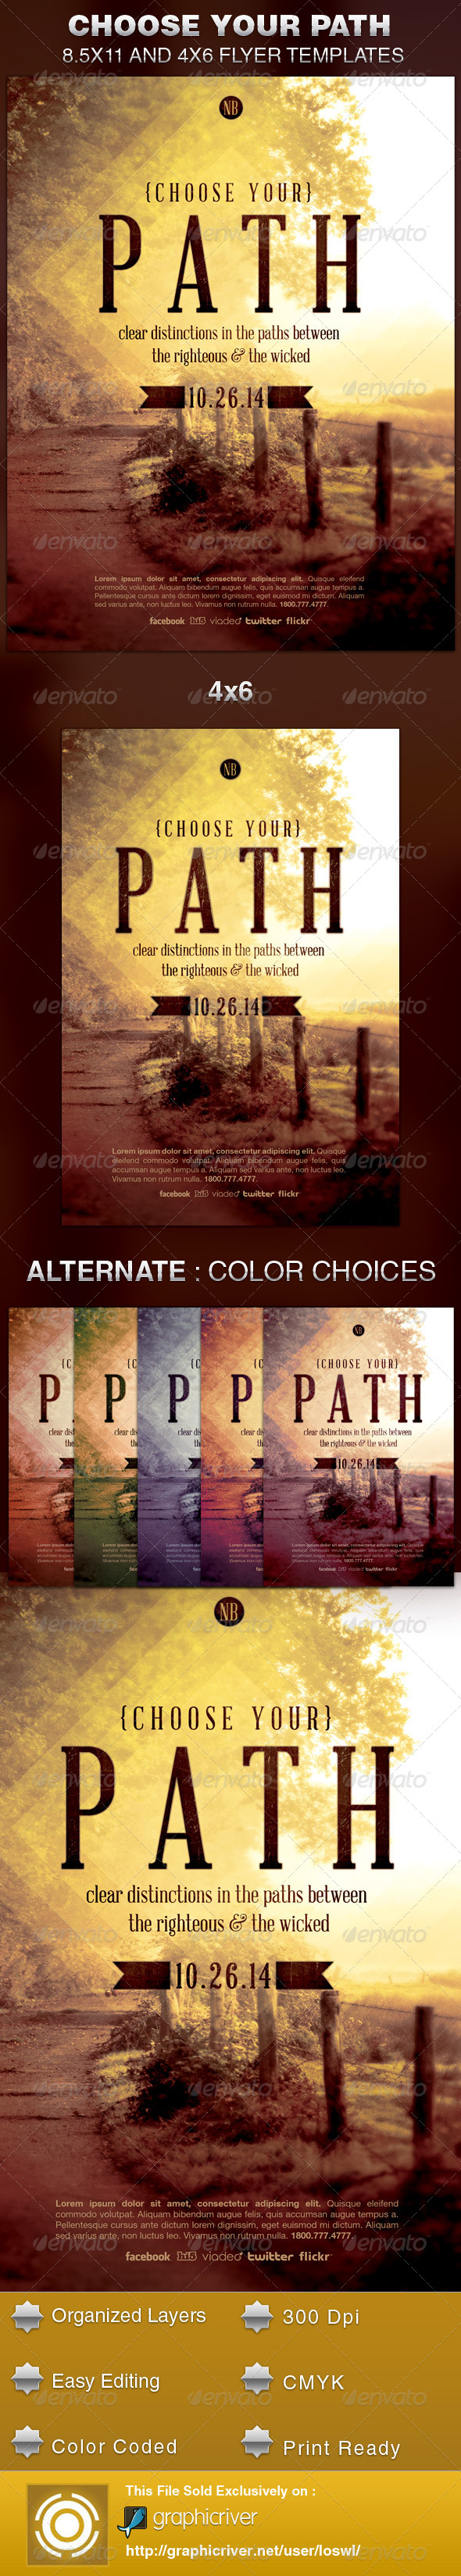 Choose your Path Church Flyer Template - Church Flyers